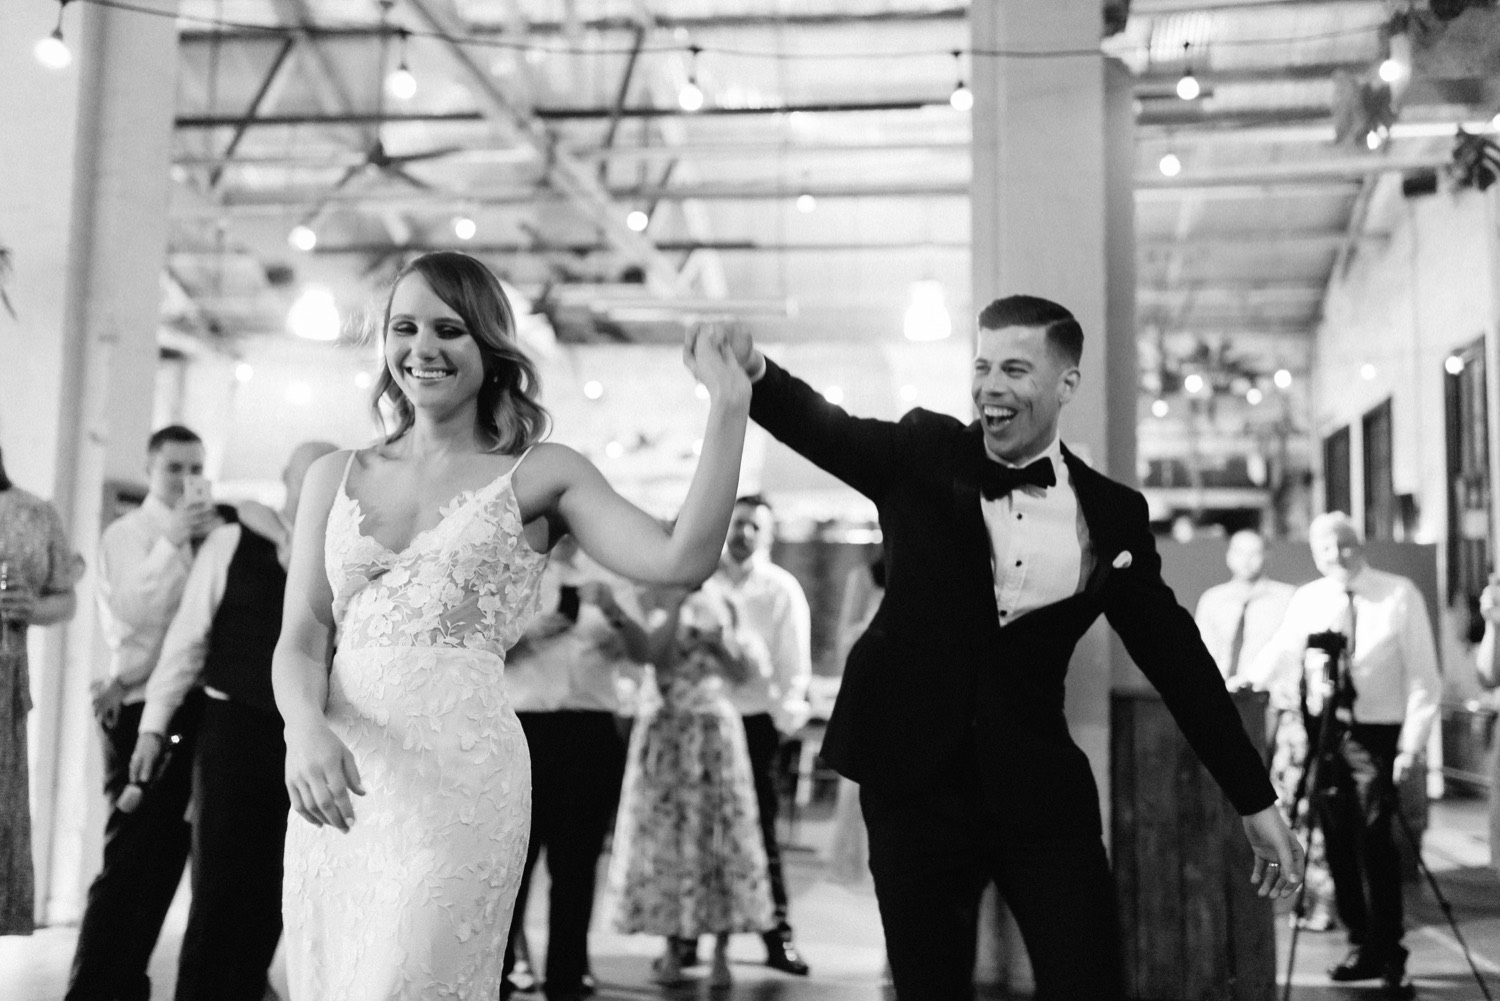 groom spinning the bride round during their first dance